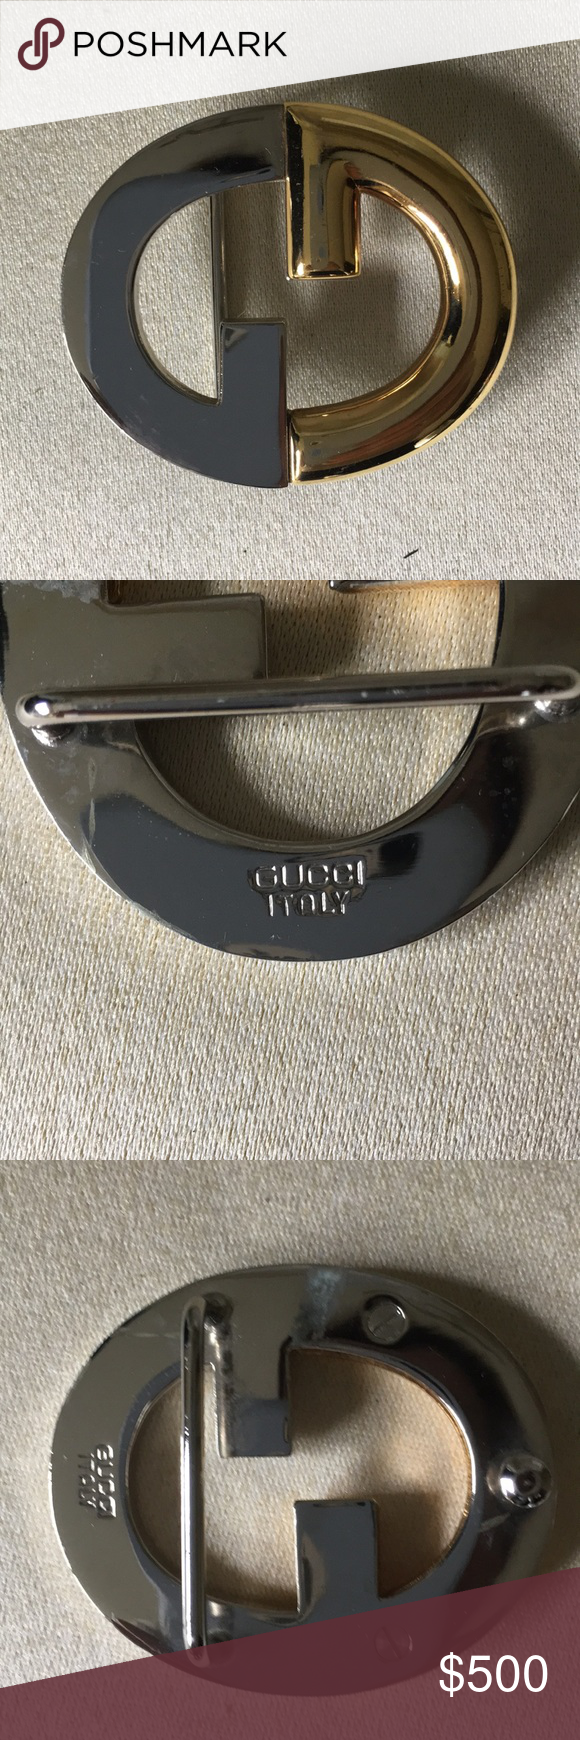 309b70b2497 Spotted while shopping on Poshmark  Gucci Belt Buckle!  poshmark  fashion   shopping  style  Gucci  Accessories